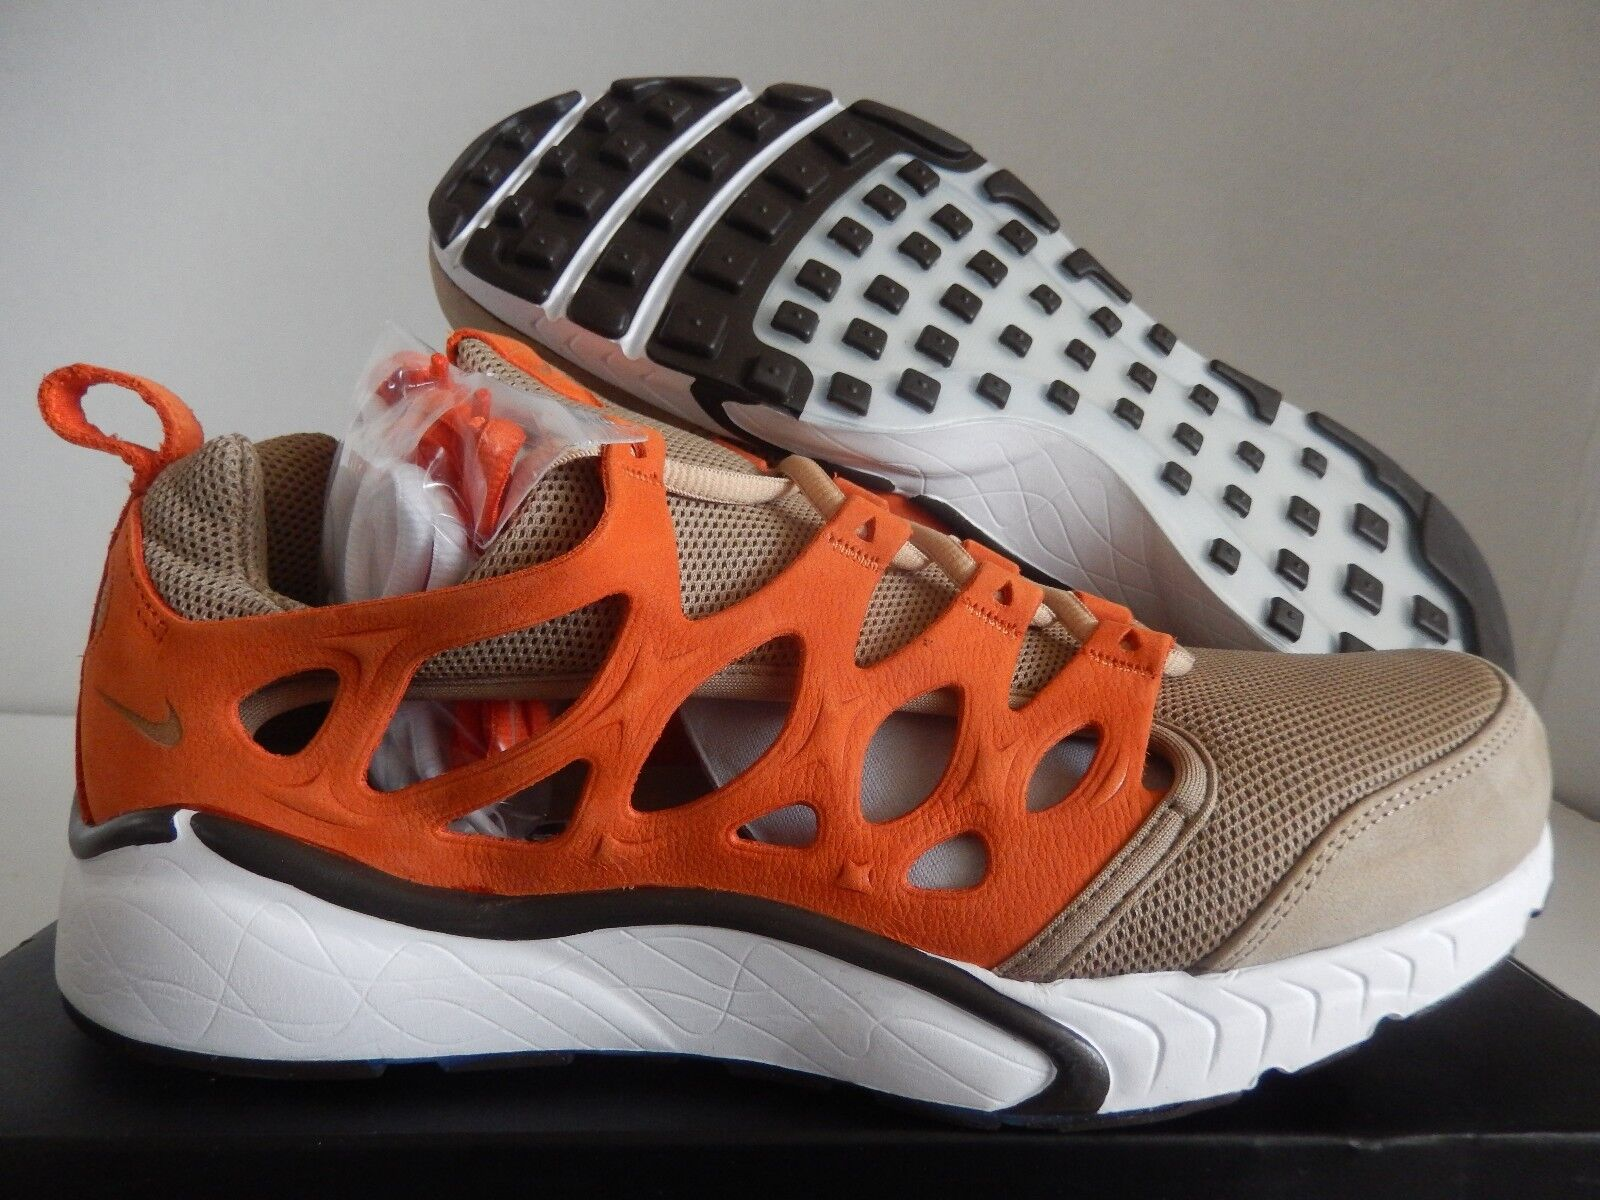 Nike vachetta air zoom chalapuka nikelab vachetta Nike tan-safety orange sz 9 [872634-202] 84e7c6